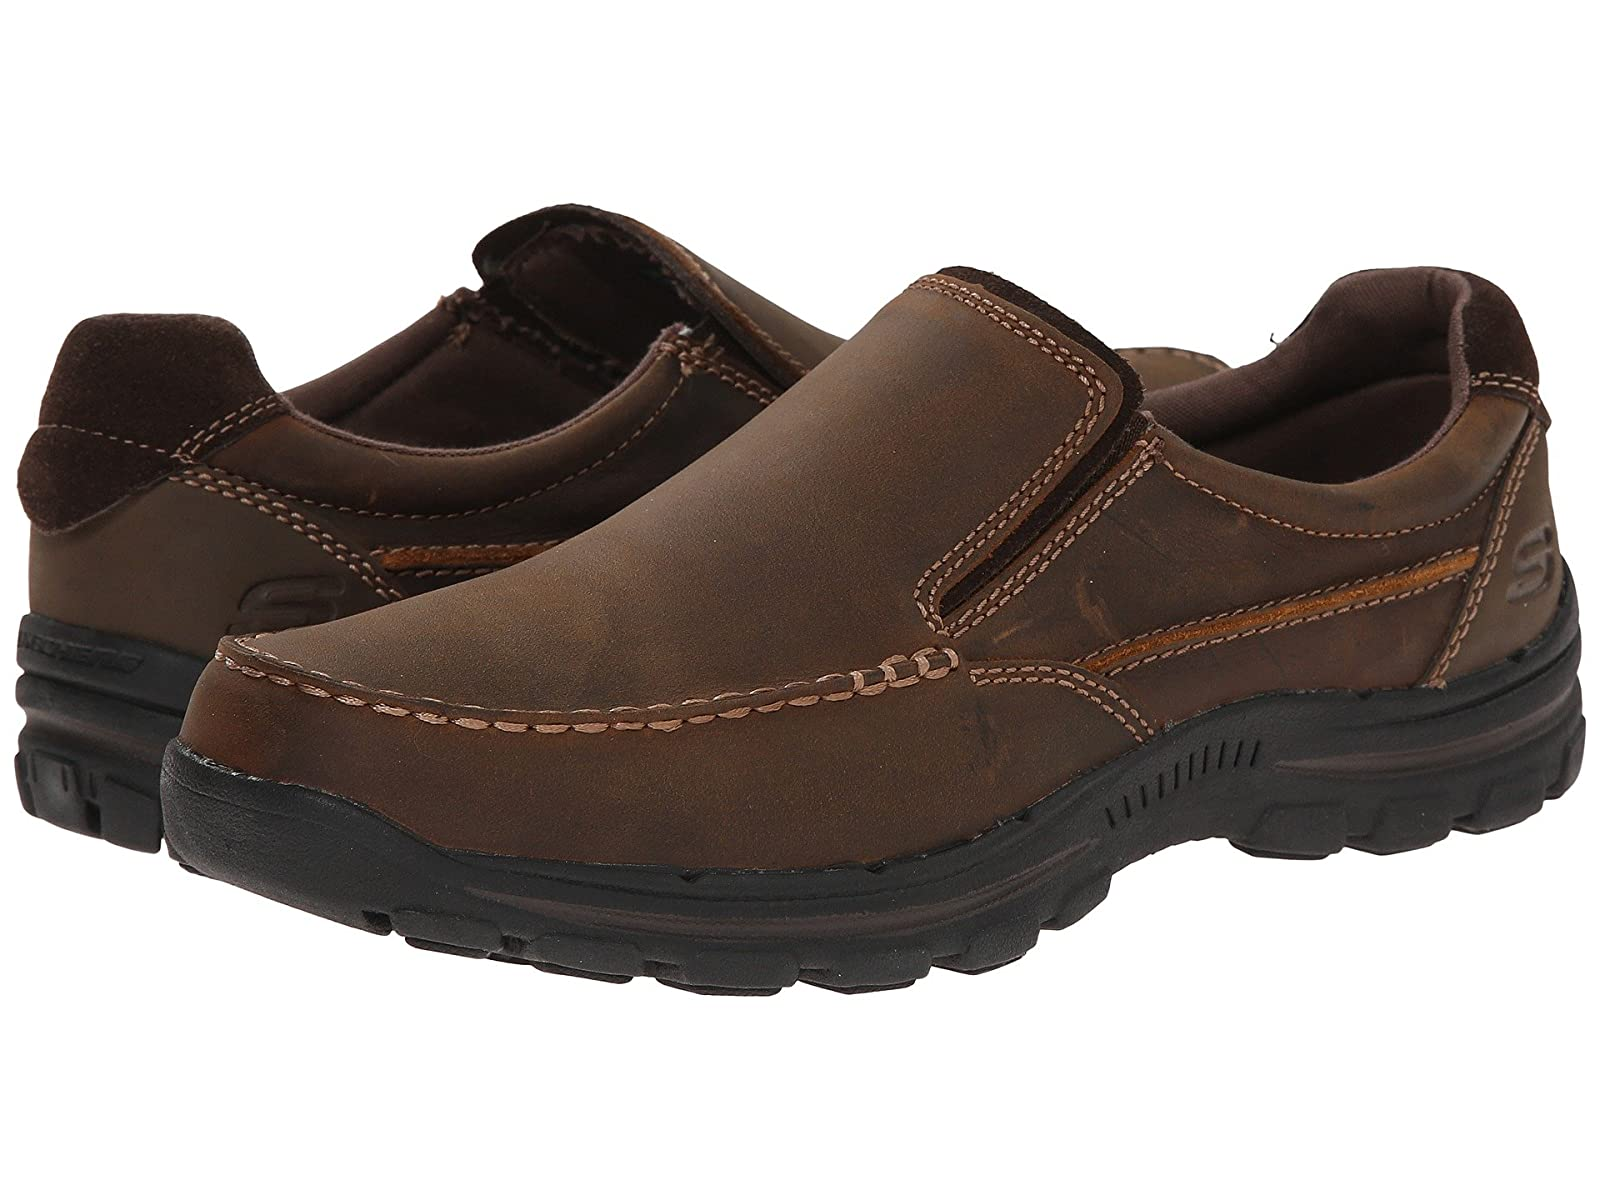 SKECHERS Relaxed Fit Braver - RaylandAtmospheric grades have affordable shoes